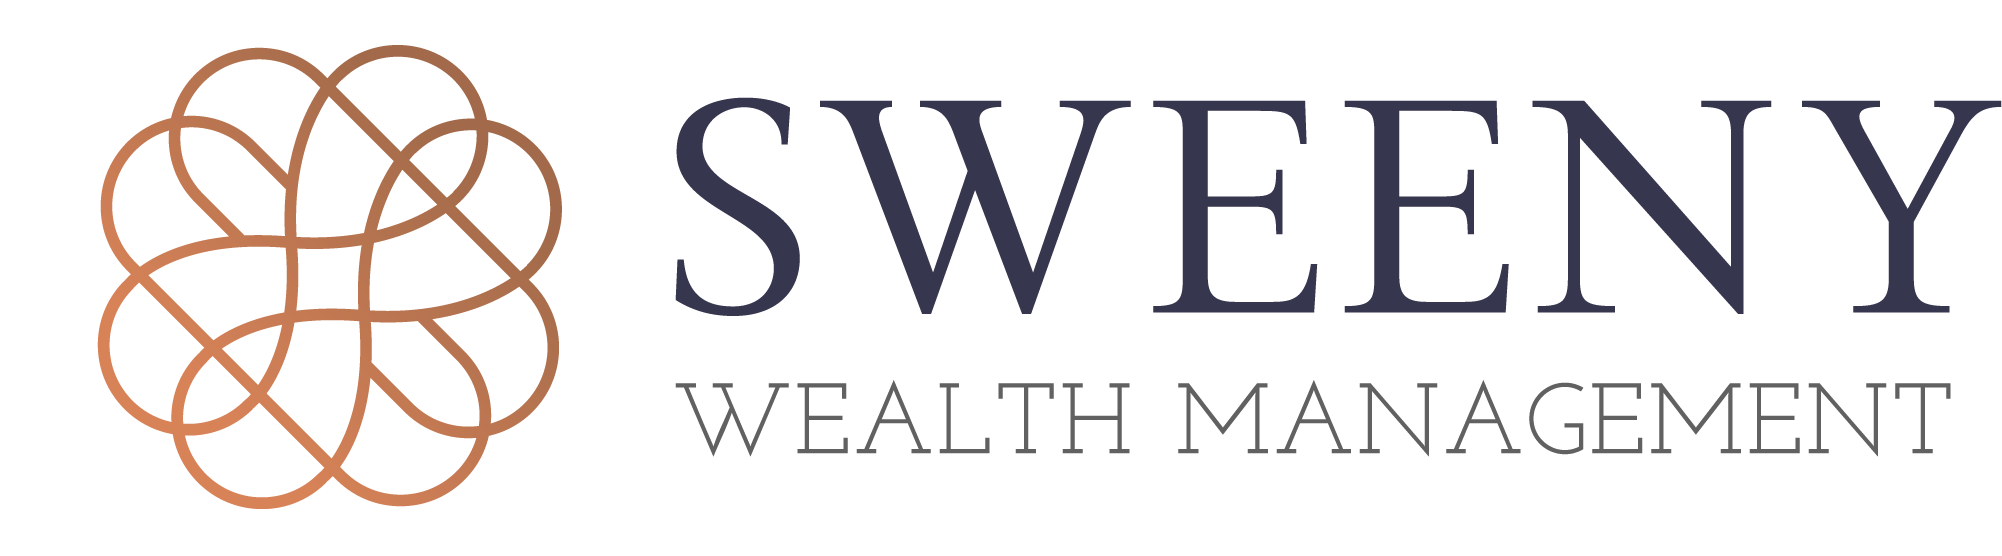 Sweeny Wealth Management Home Logo